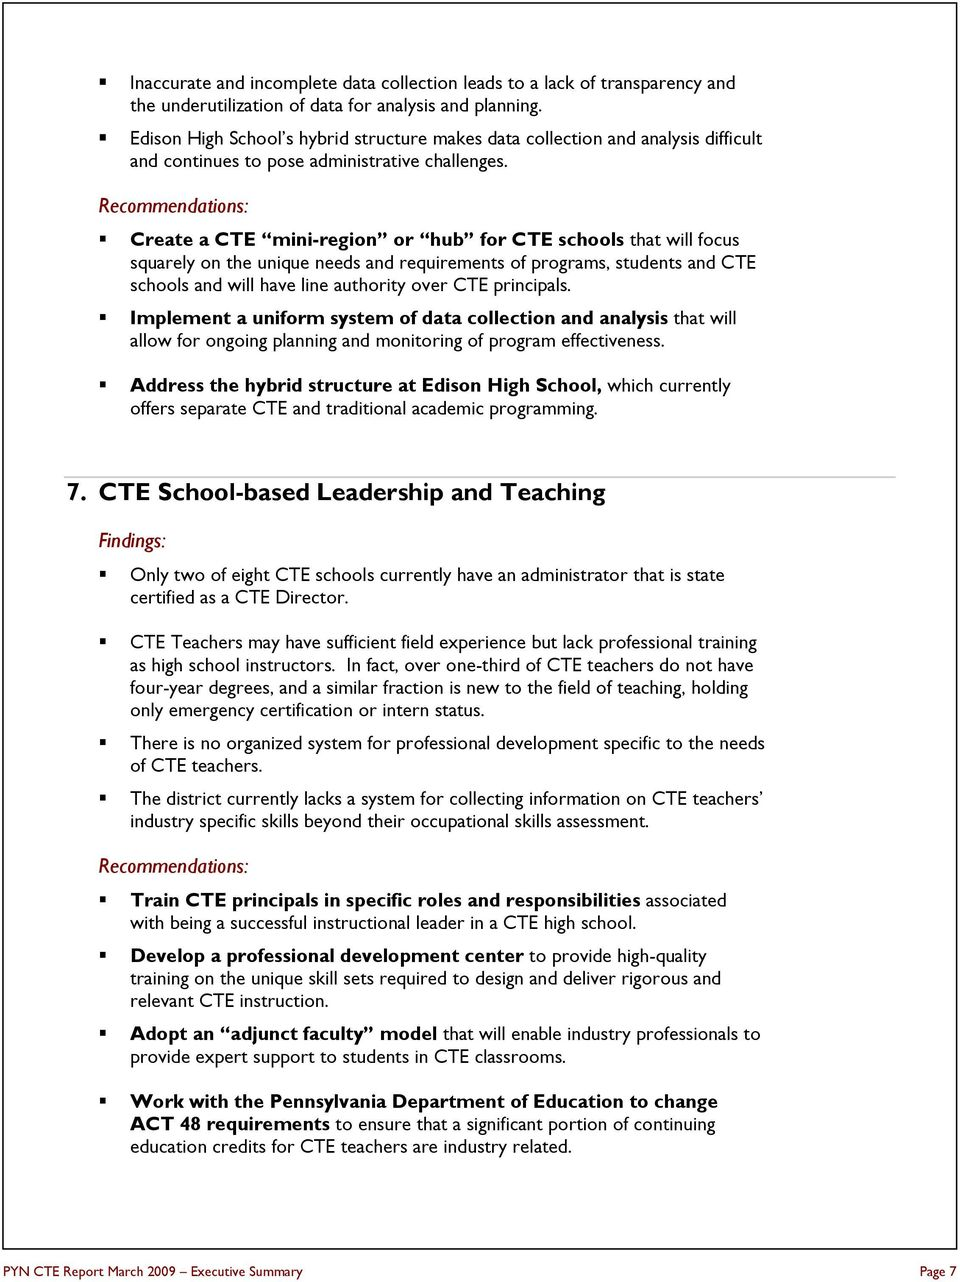 Create a CTE mini-region or hub for CTE schools that will focus squarely on the unique needs and requirements of programs, students and CTE schools and will have line authority over CTE principals.